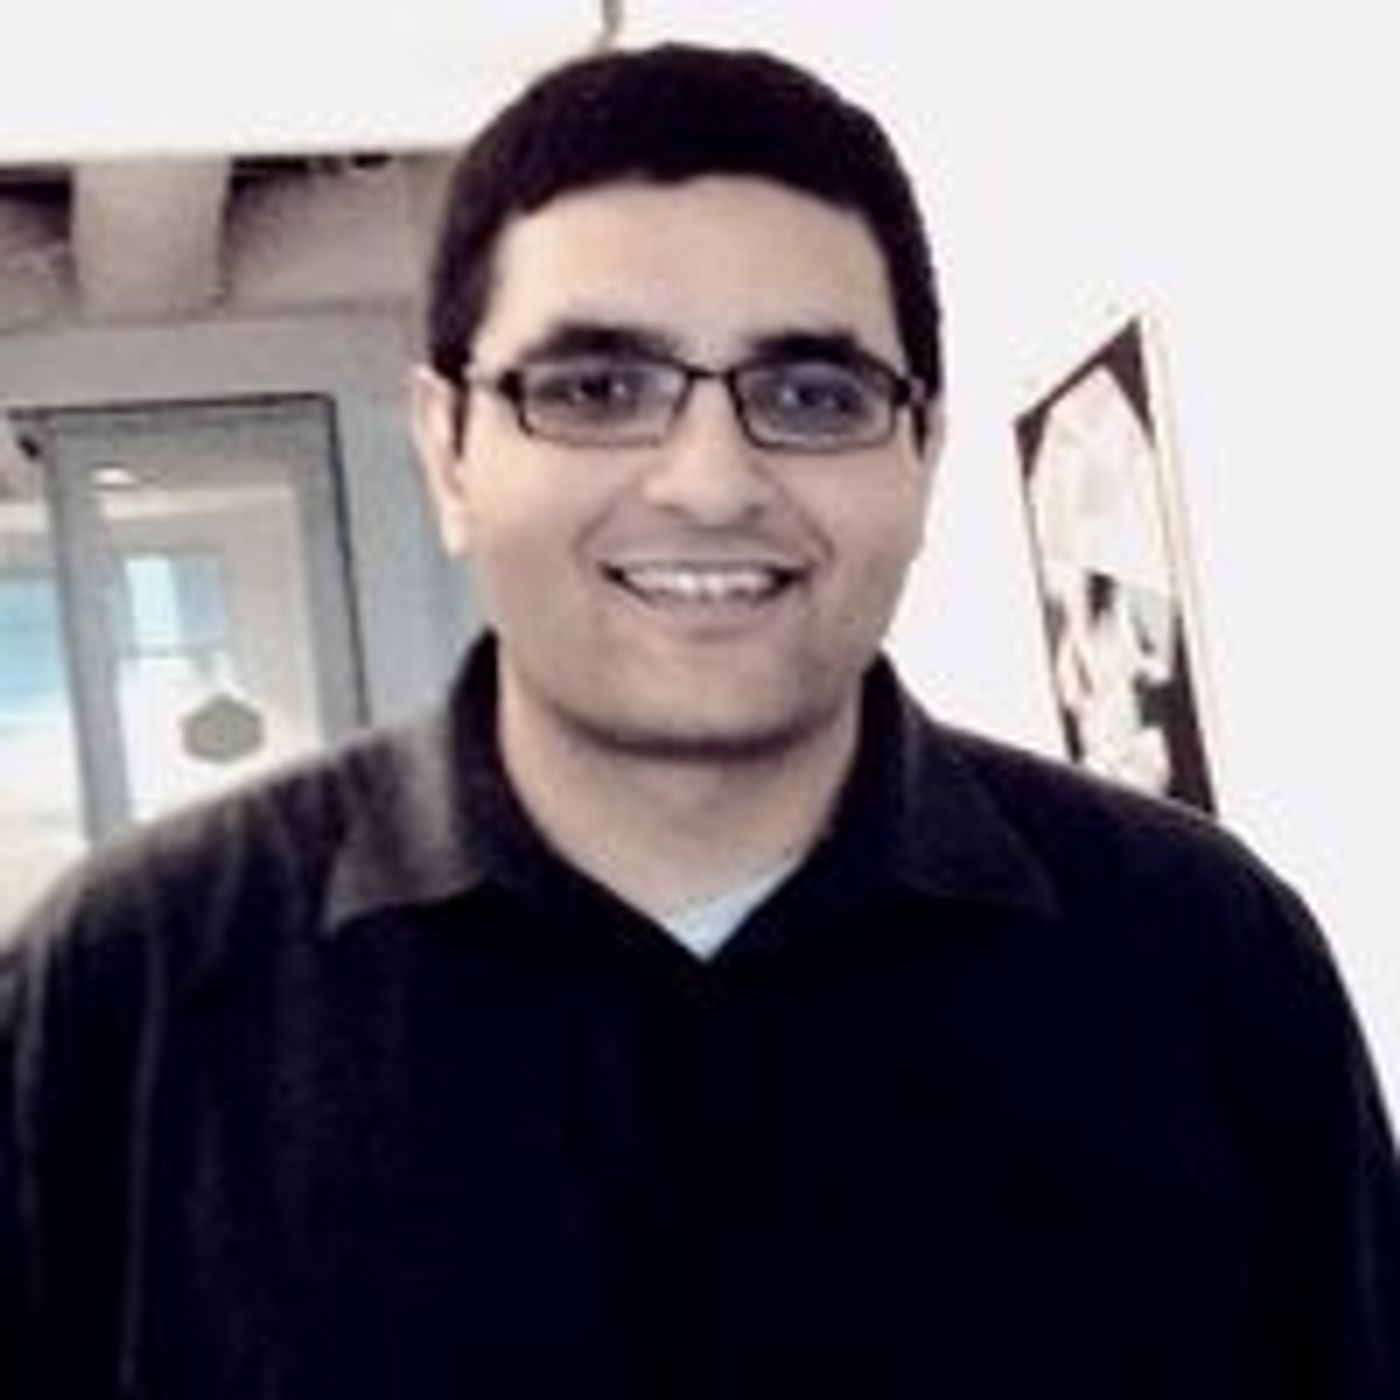 110 - Code Organization, Project Management, and Freelancing with Riaz Virani